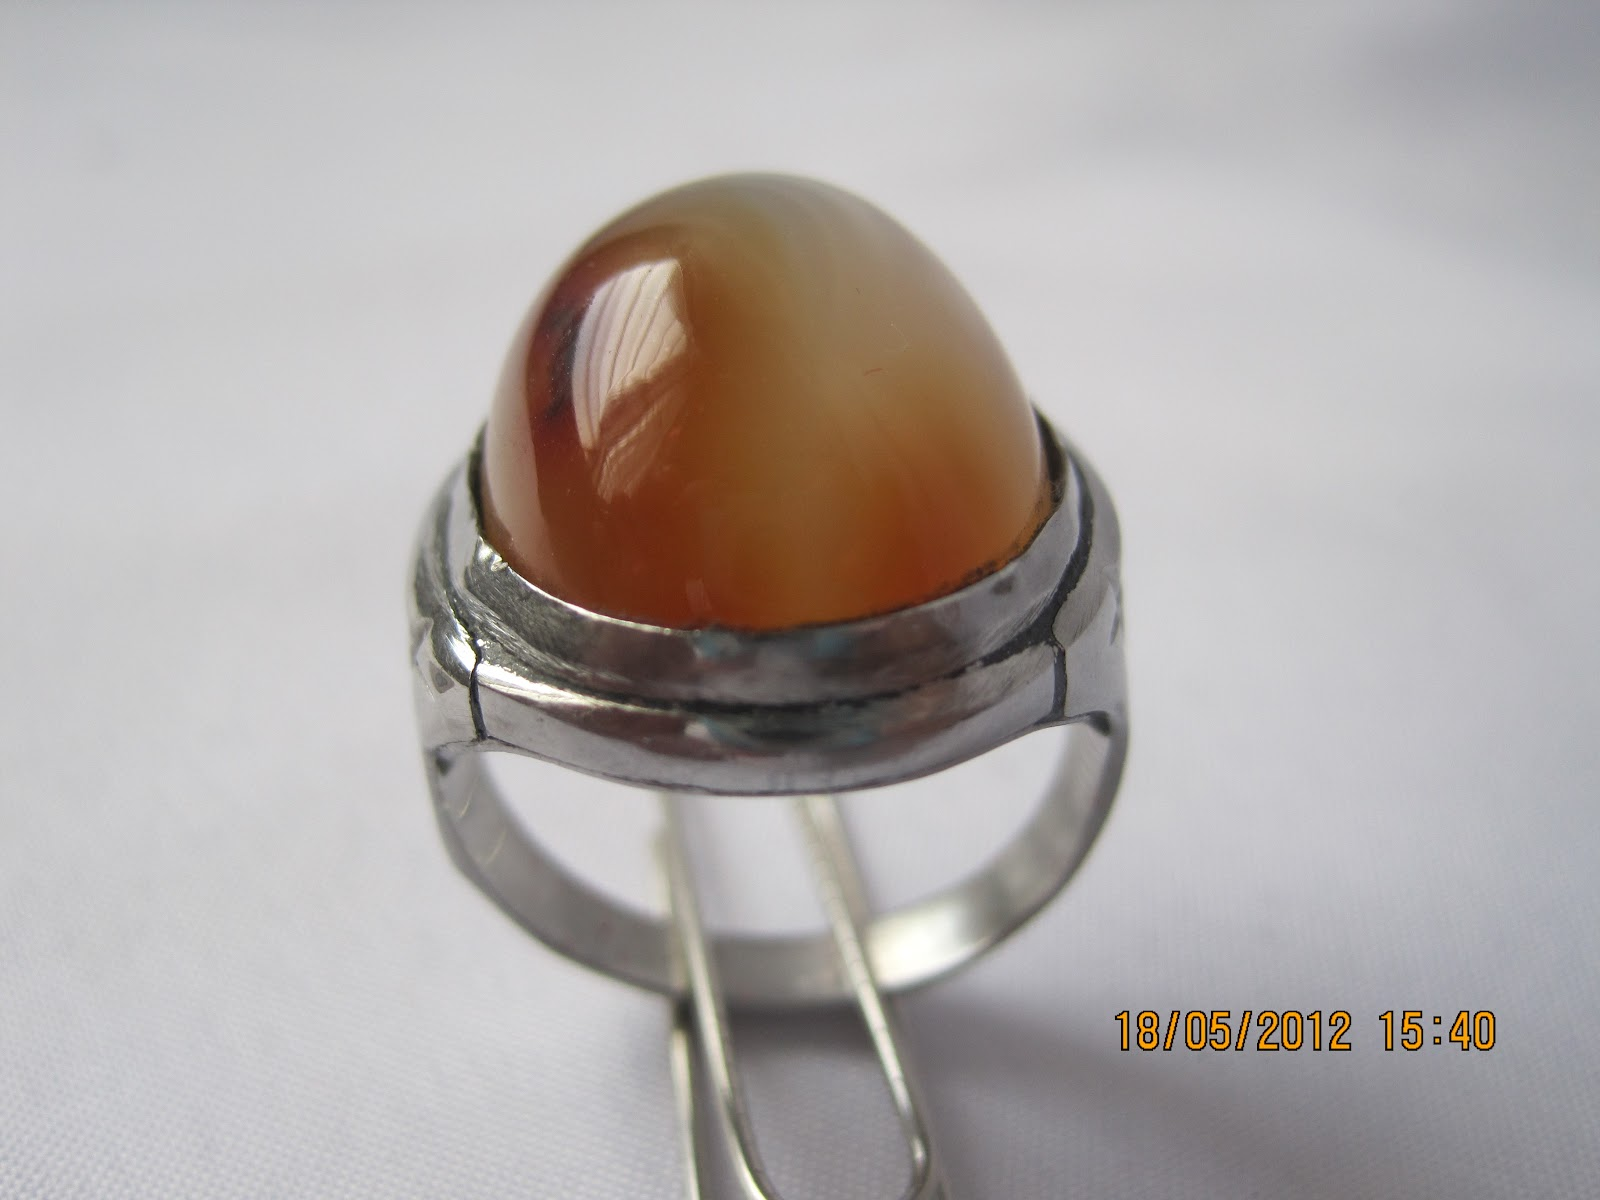 Batu Permata Cincin Akik Yaman Asli Available